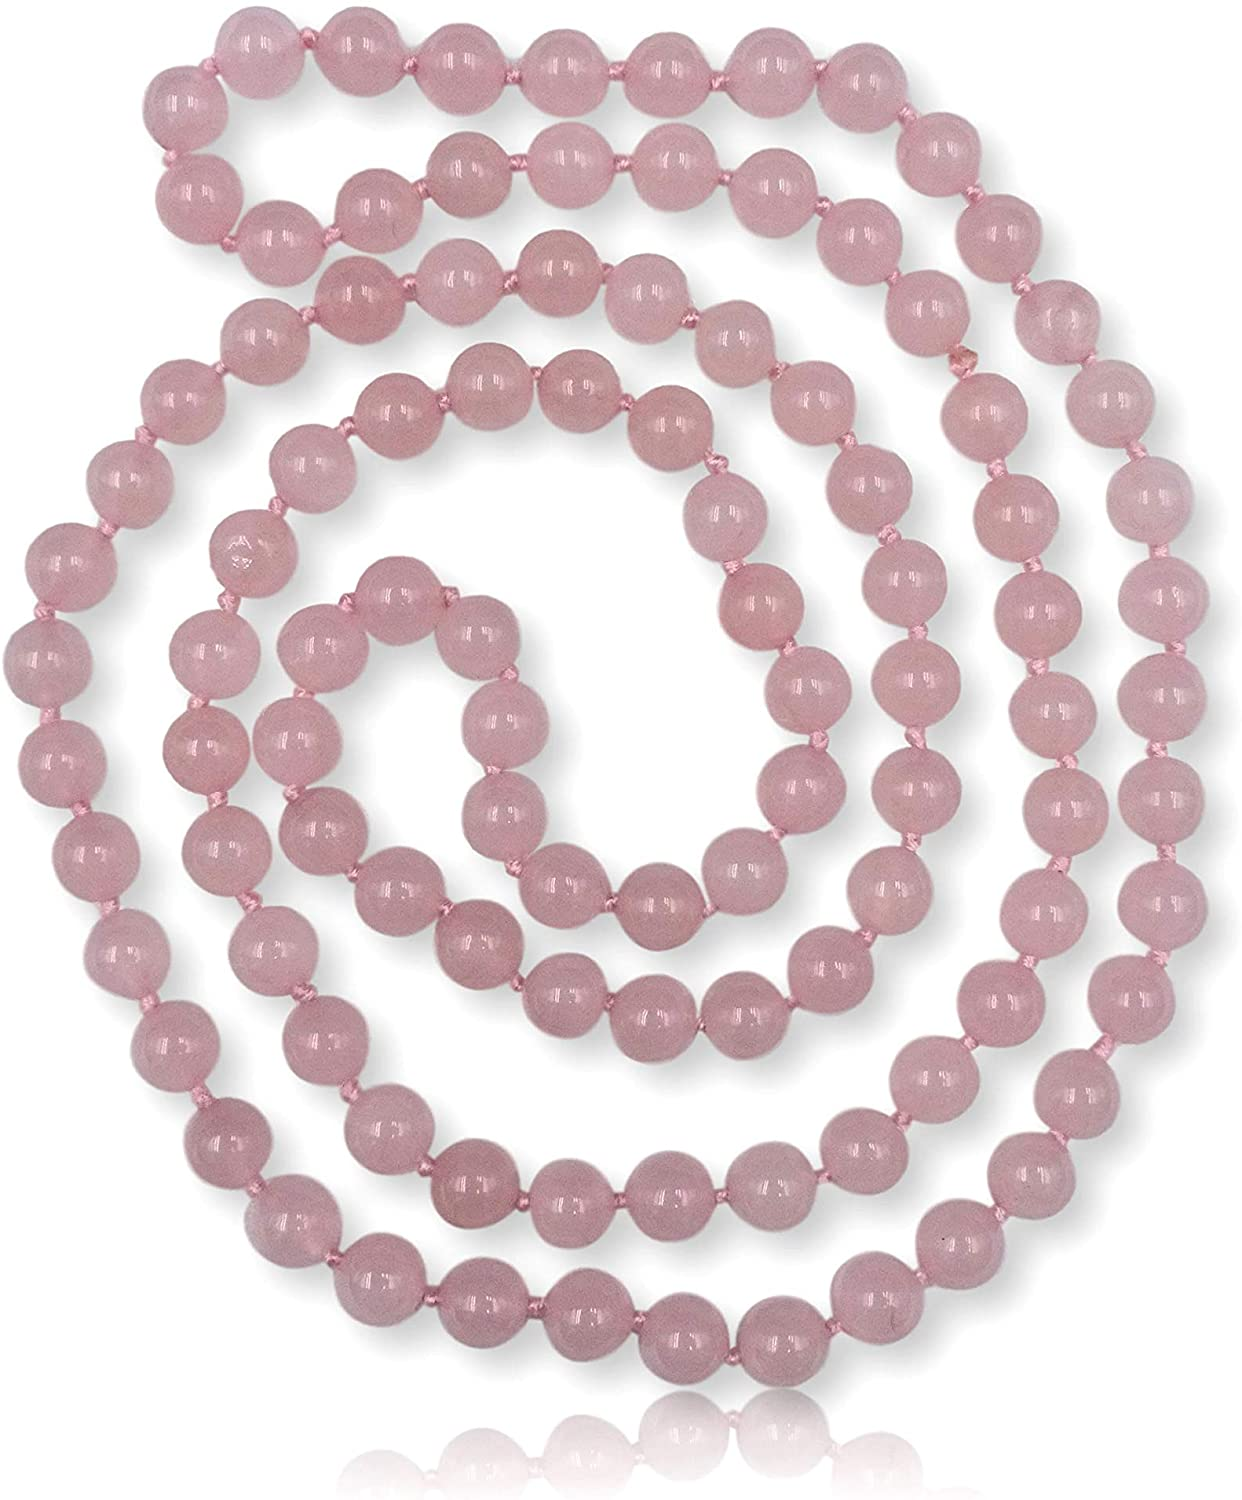 MGR MY GEMS ROCK! 36 Inch 8MM Polished Genuine Semi-Precious Stone Endless Infinity Long Beaded Strand Necklace.